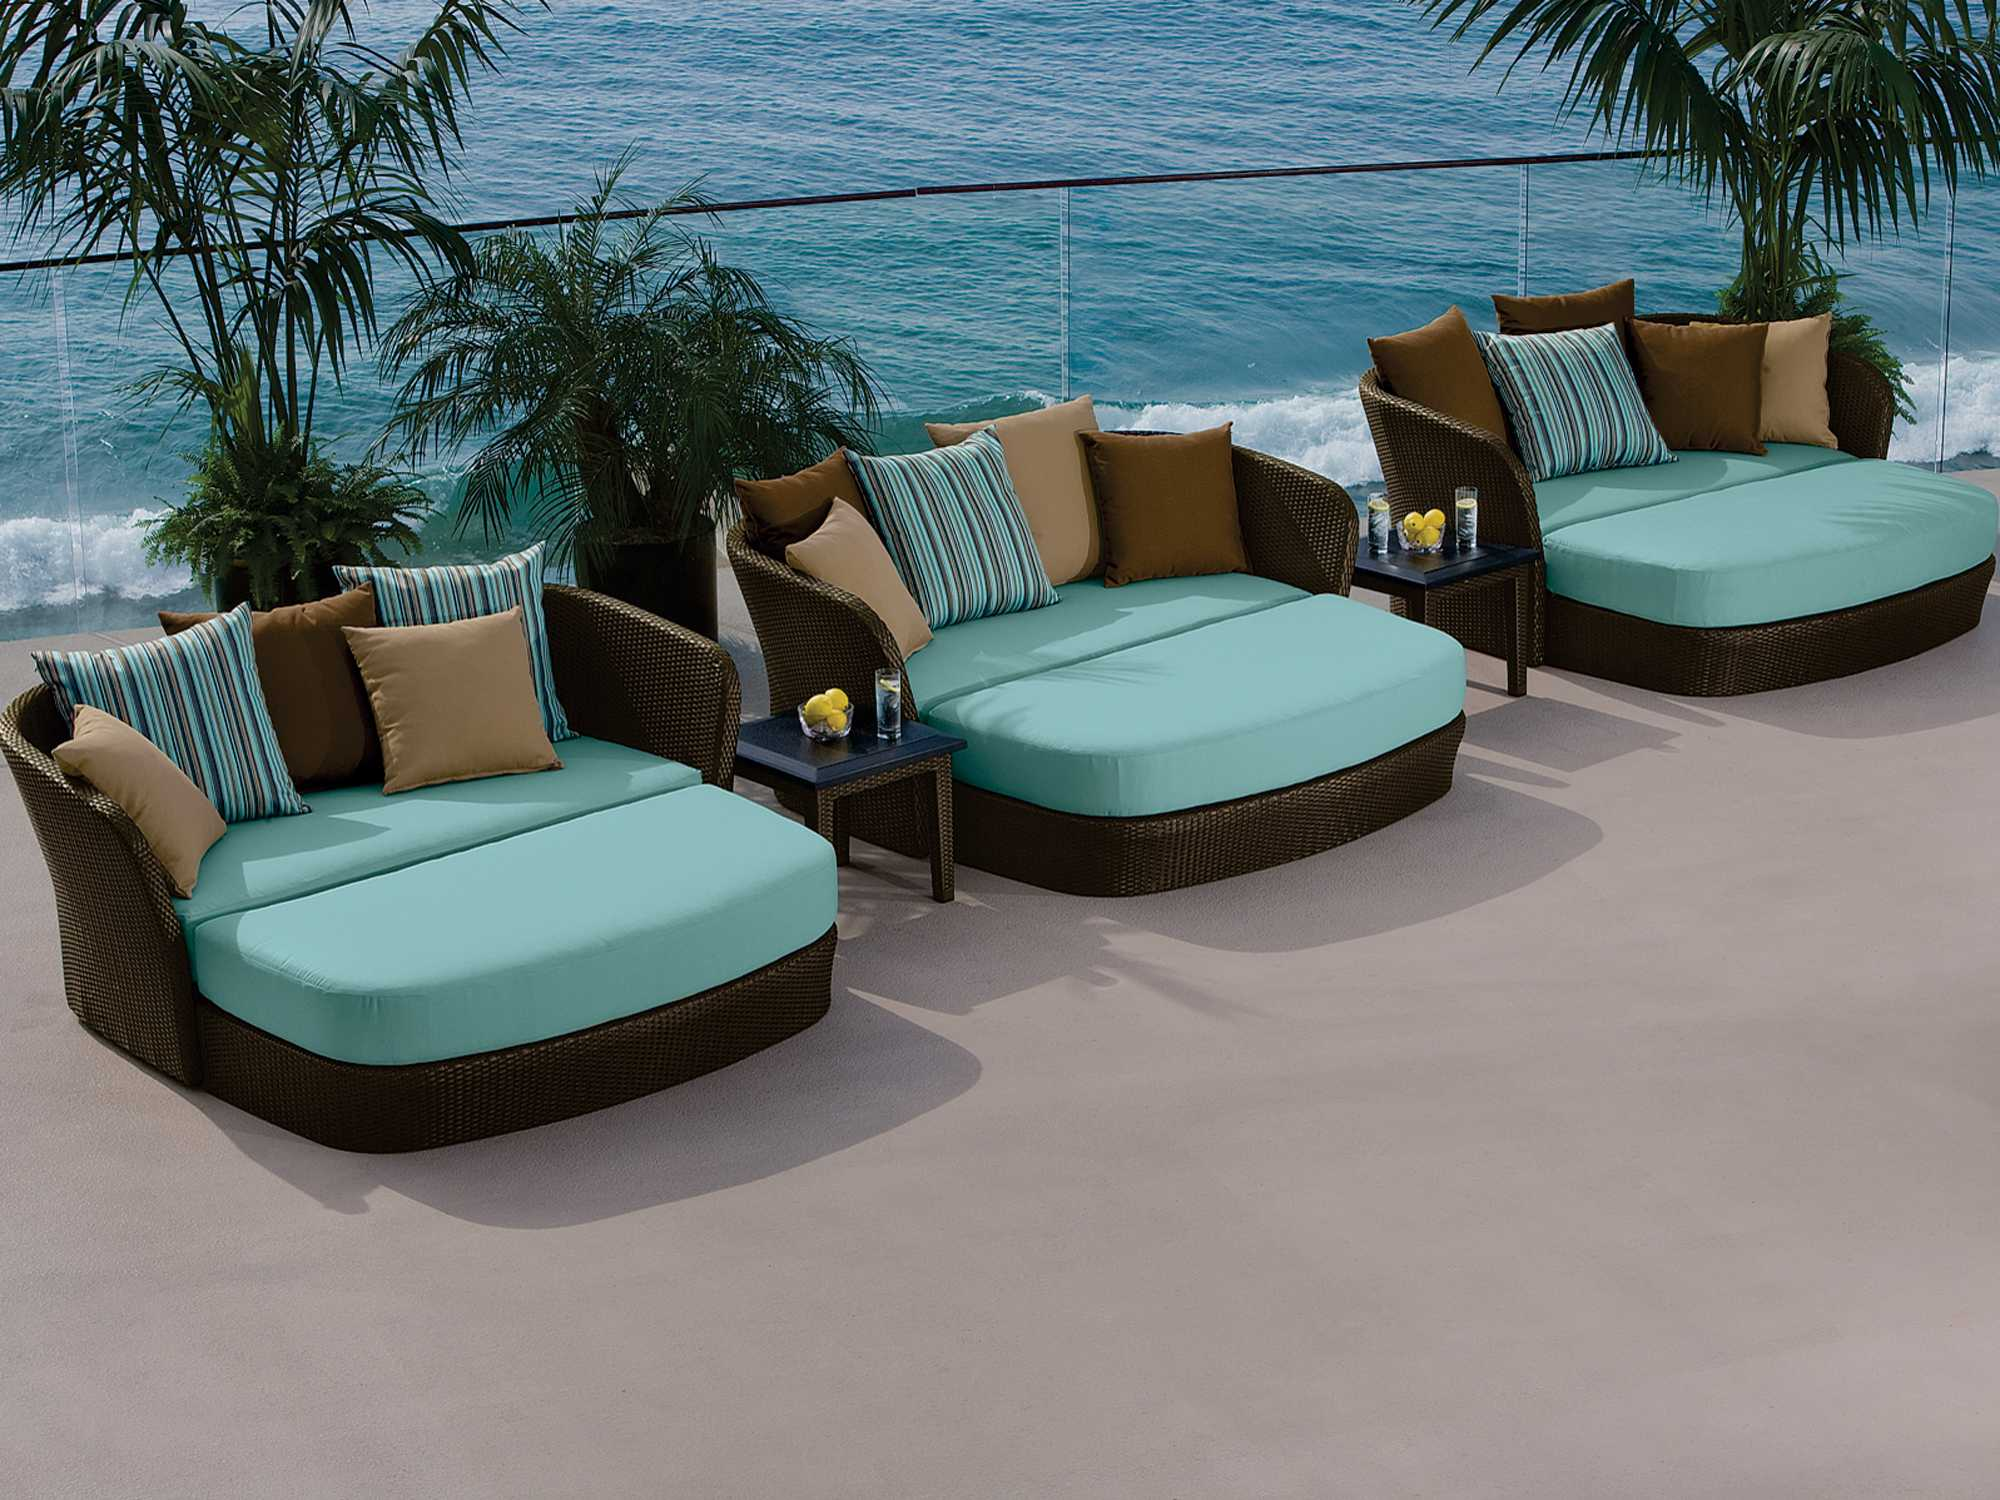 Tropitone mia wicker lounge set mials for Pool and patio furniture